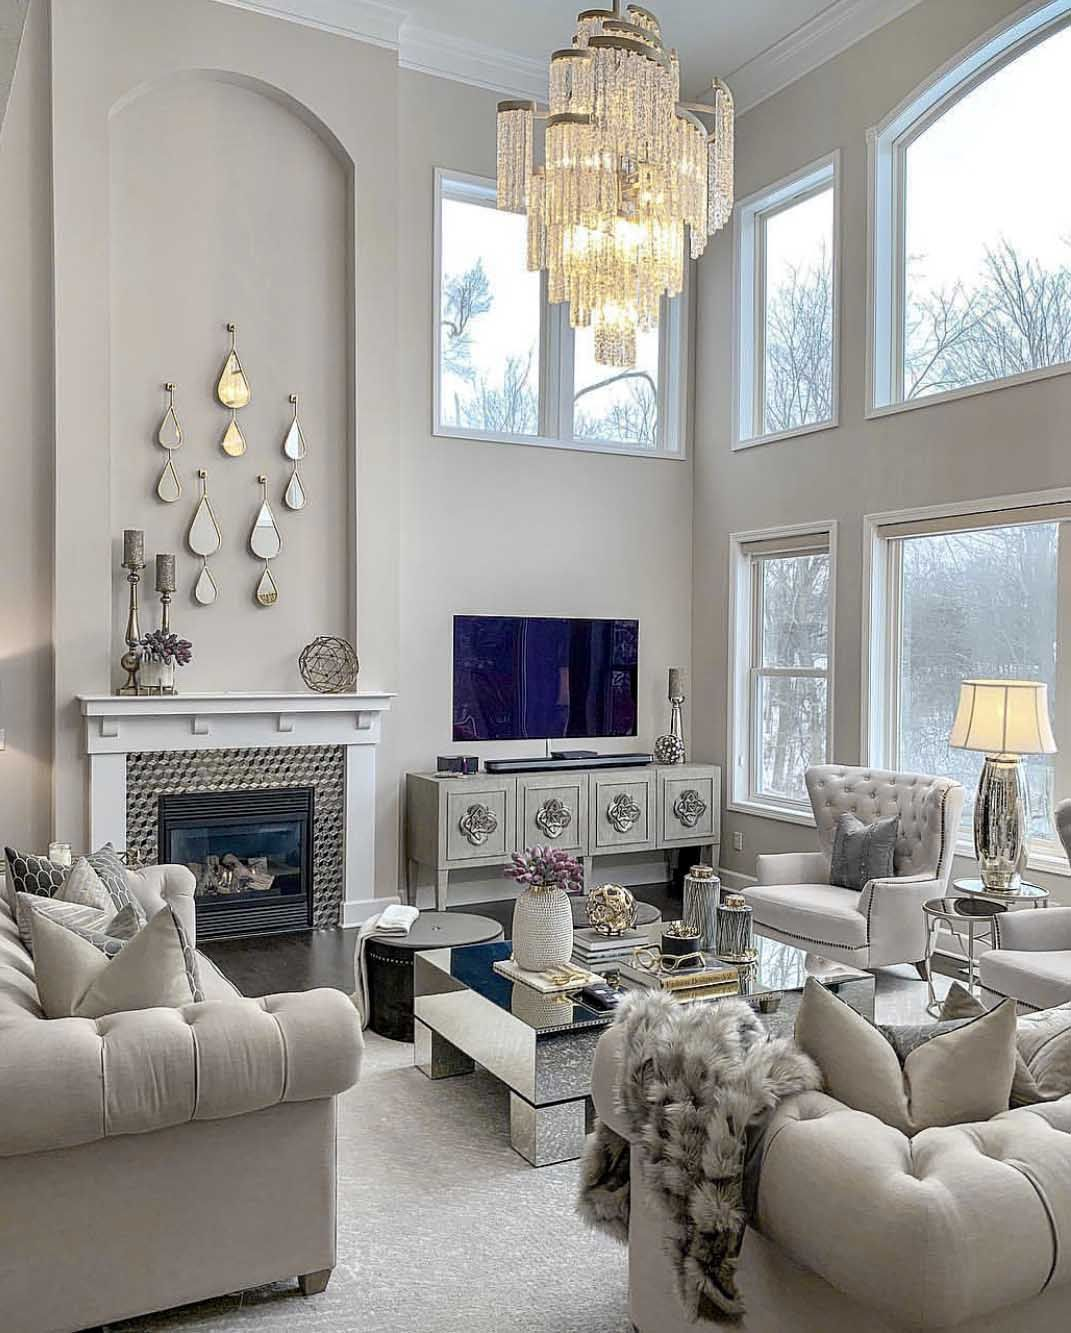 33 Beige Living Room Ideas: Elegant Transitional Style Beige Living Room Decor With